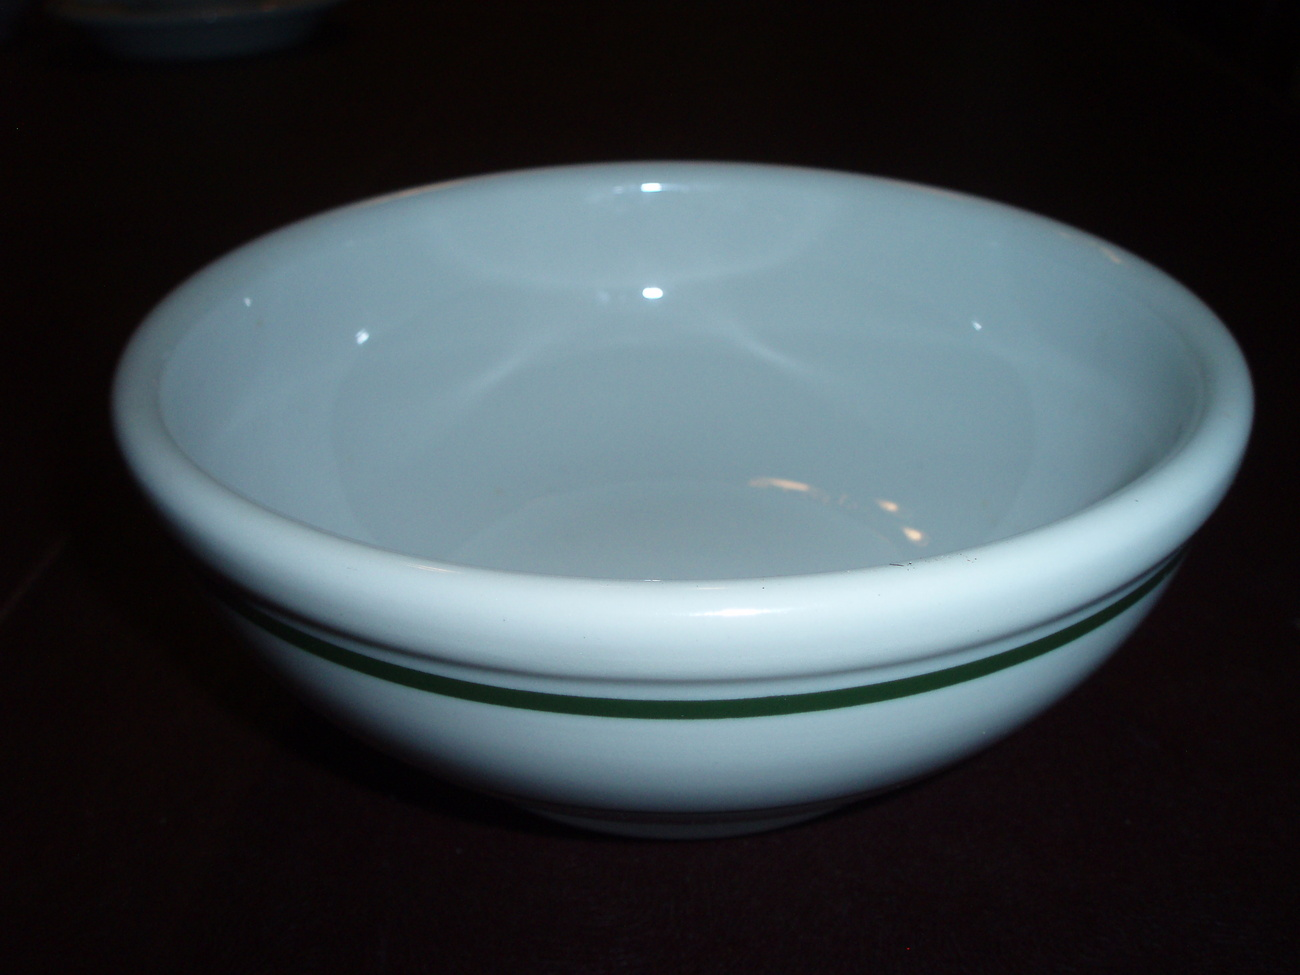 Thumbnail of Shenango China cereal bowl Lawrence V16 restaurant ware